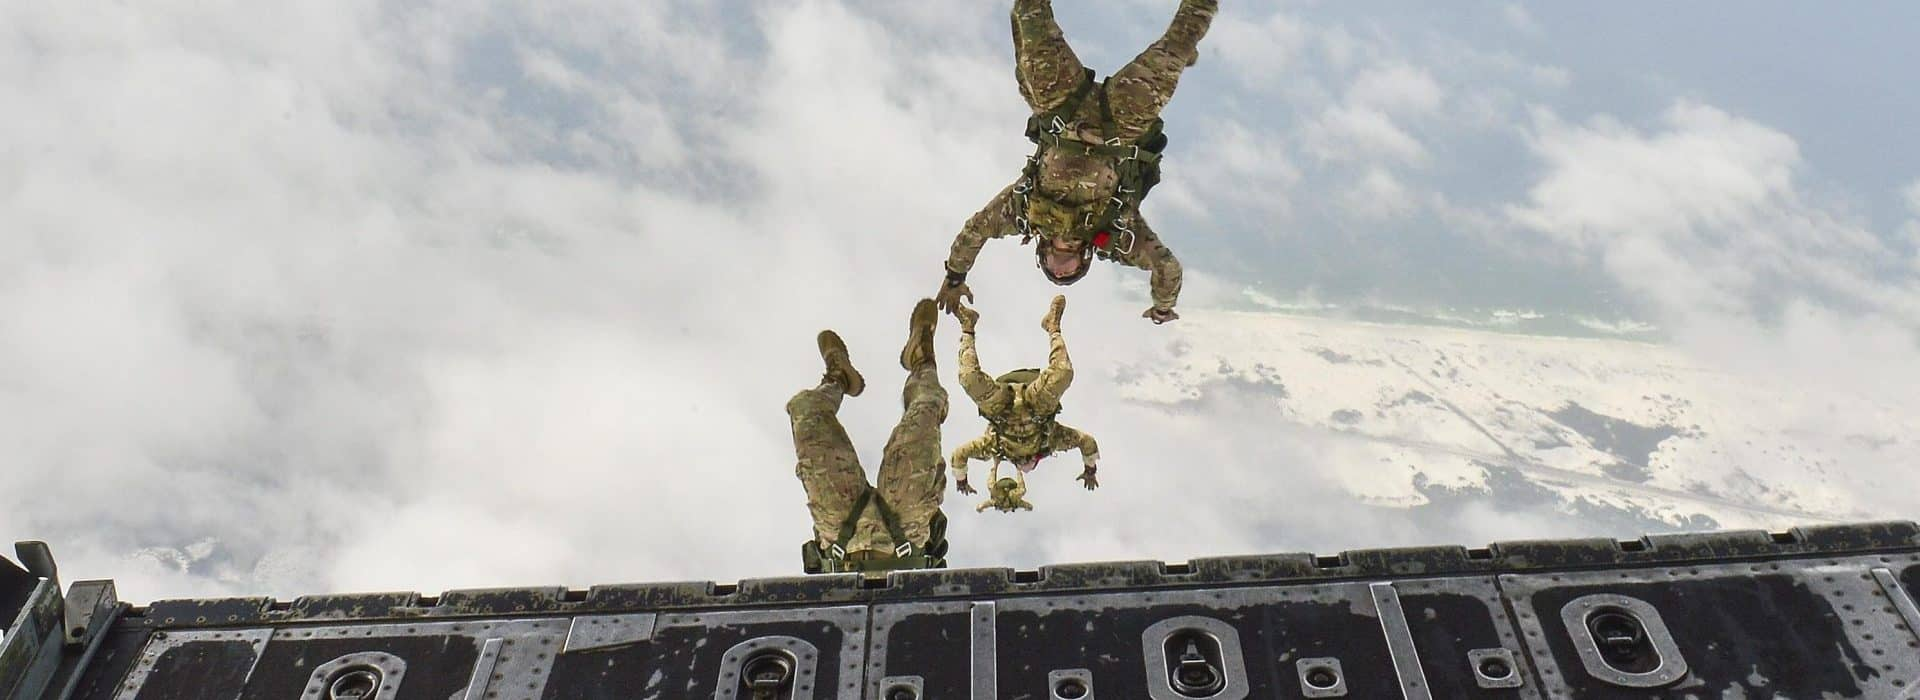 The DET header, three paratroopers jumping from rear ramp of aircraft.